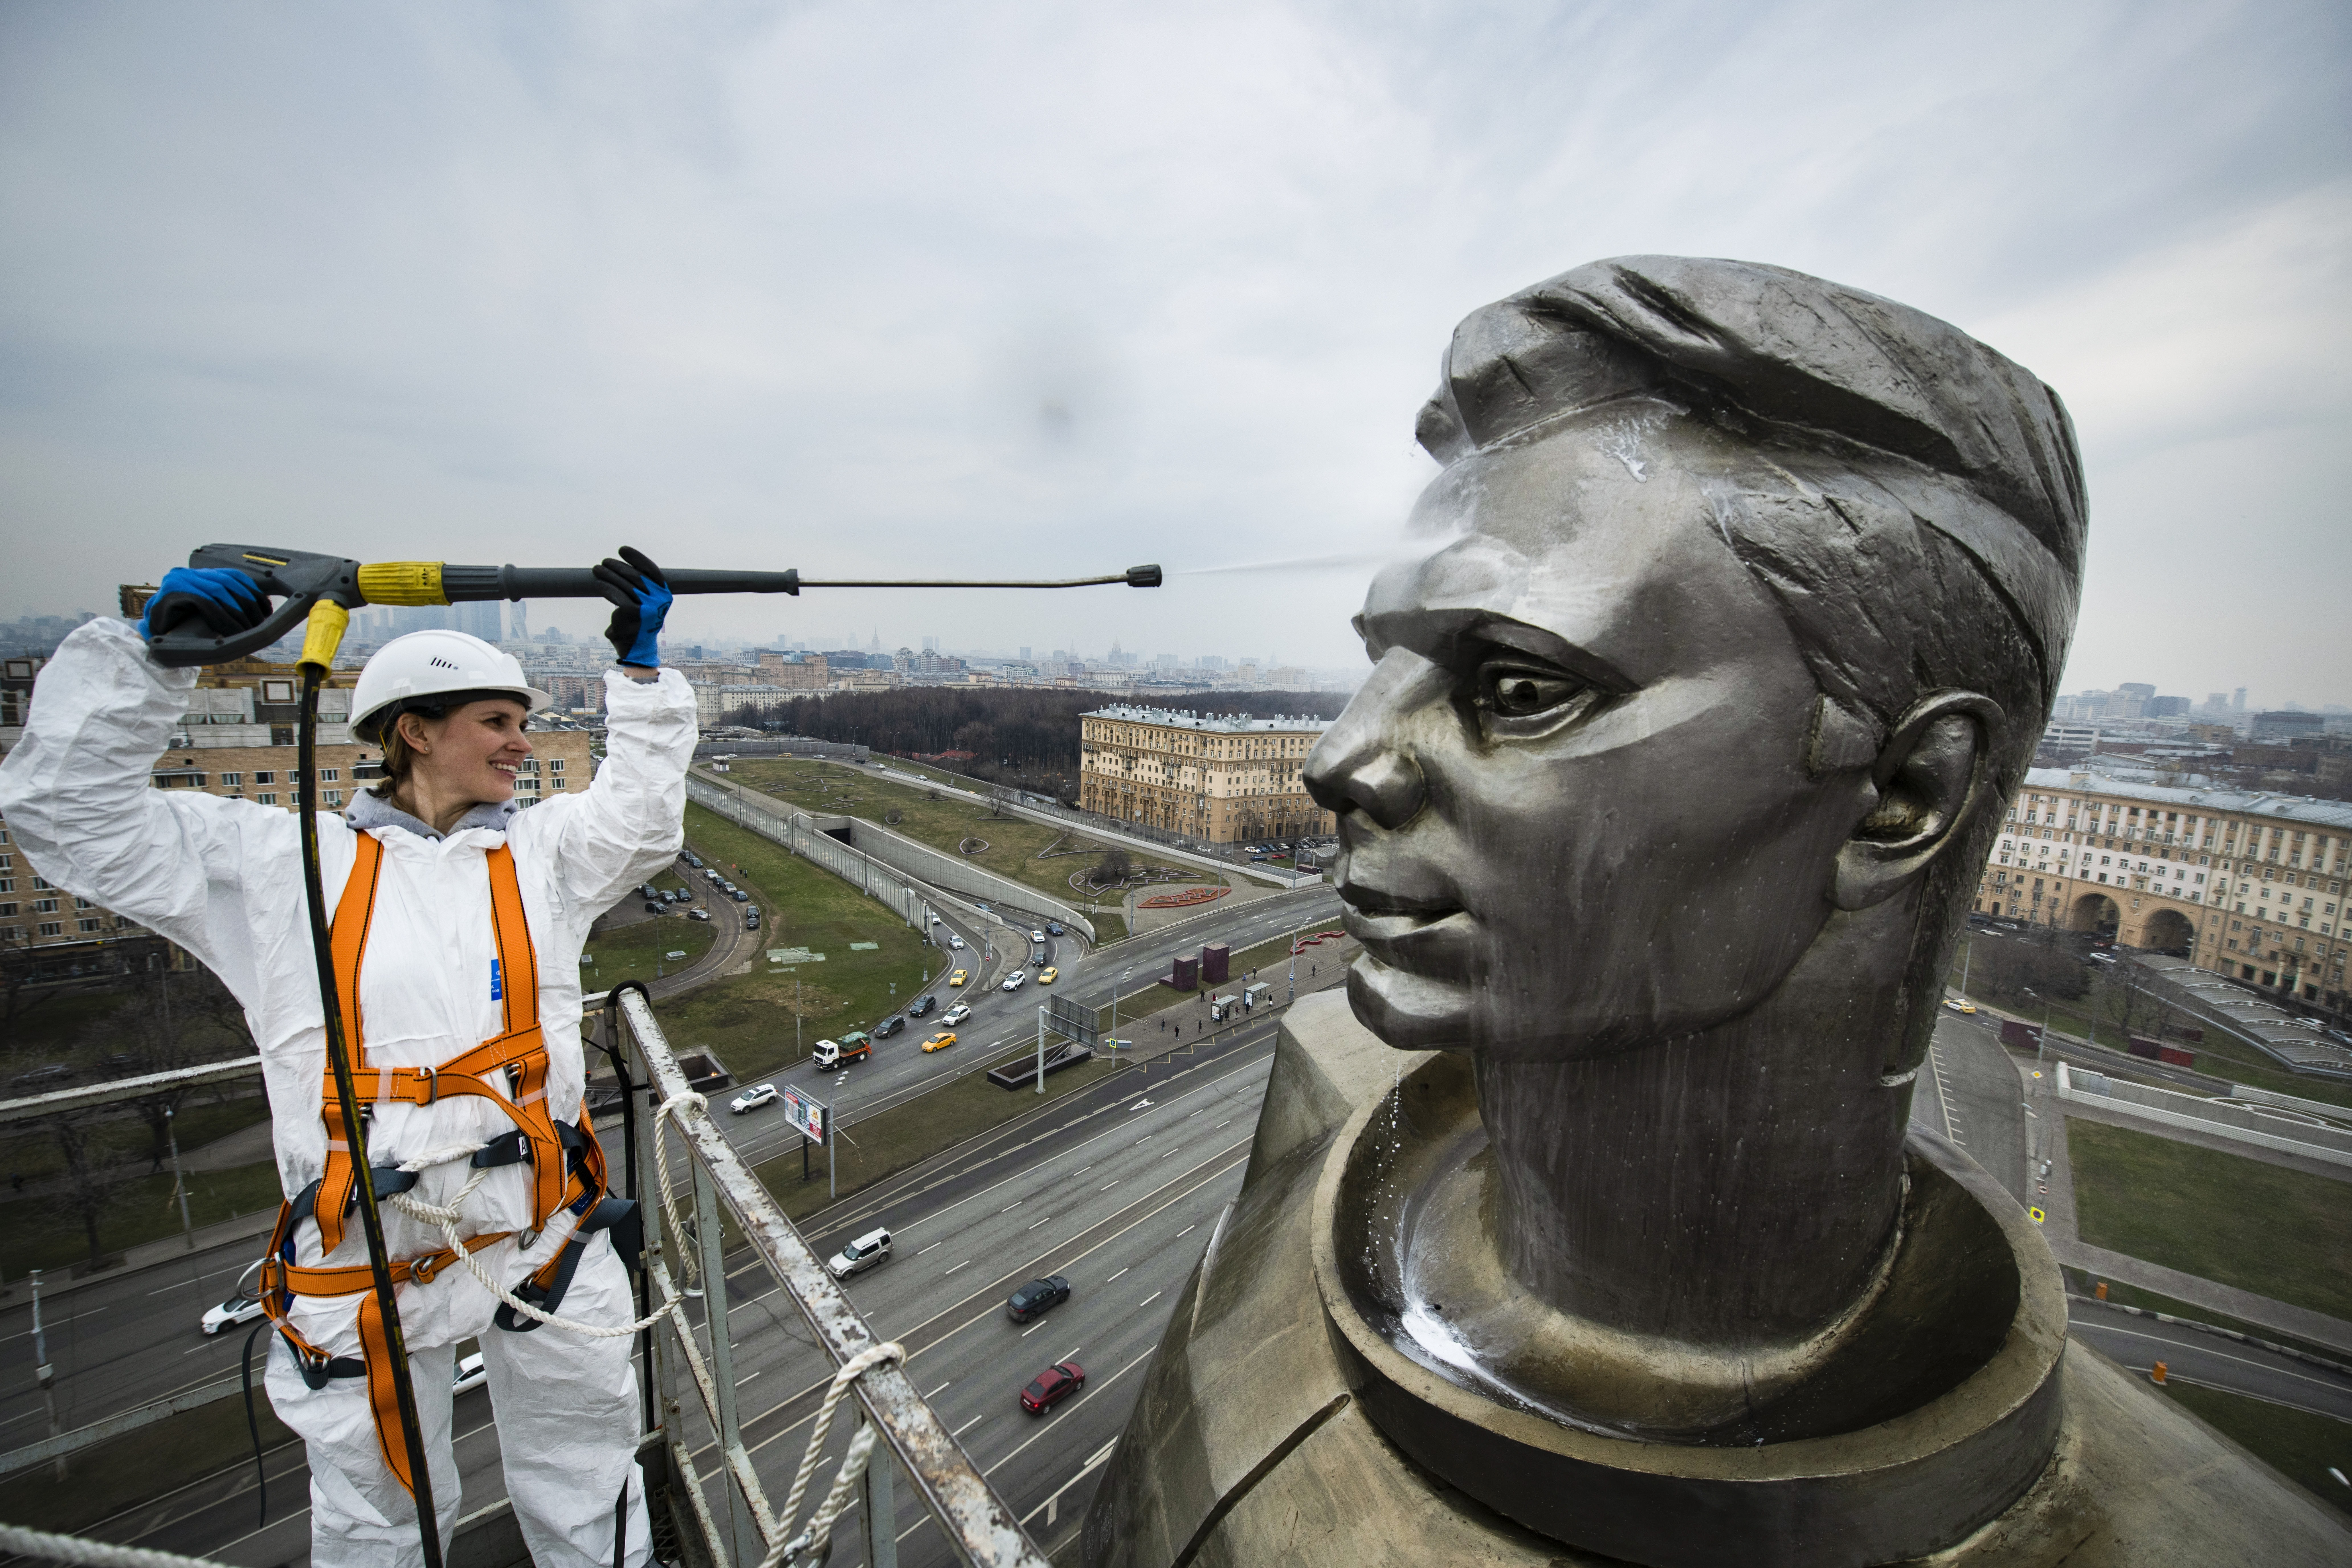 A worker cleans the statue of Yuri Gagarin, the first person who flew to space, ahead of Cosmonautics Day celebrated on April 12, in Moscow, Russia, Wednesday April 10, 2019. Cosmonautics Day marks when Soviet cosmonaut Yuri Gagarin became the first man to fly in space, in 1961, orbiting the earth once before making a safe landing. (AP Photo/Maxim Marmur)